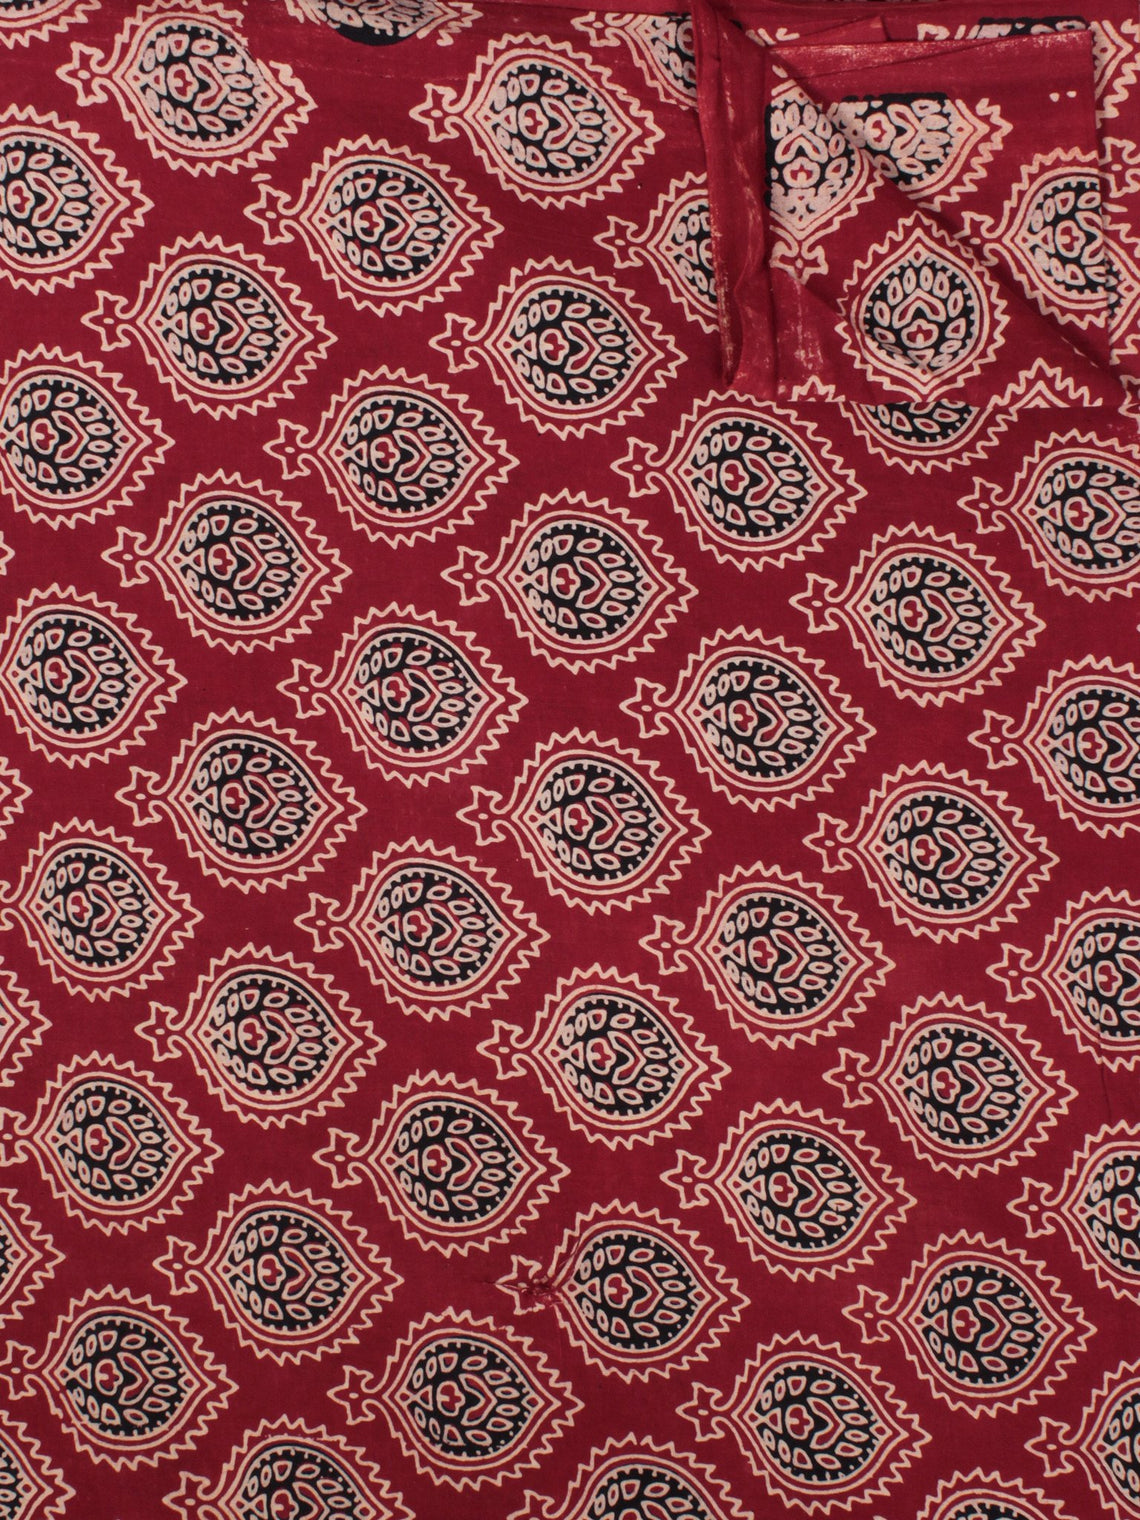 Maroon Black Beige Ajrakh Block Printed Cotton Fabric Per Meter - F003F862